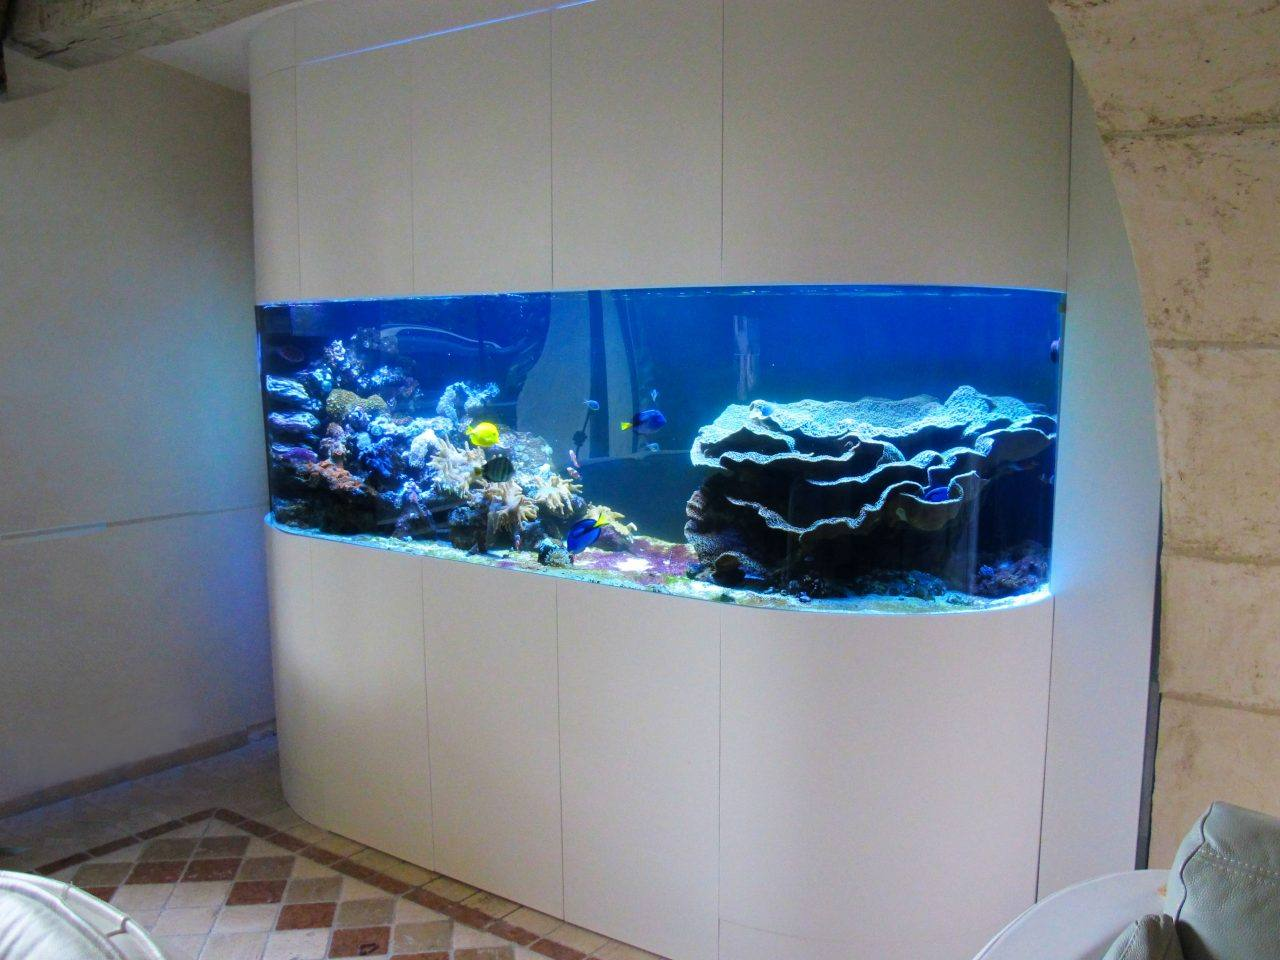 fabrication vente aquariums eau de mer recifal odyssee aquarium odyssee v g tale. Black Bedroom Furniture Sets. Home Design Ideas